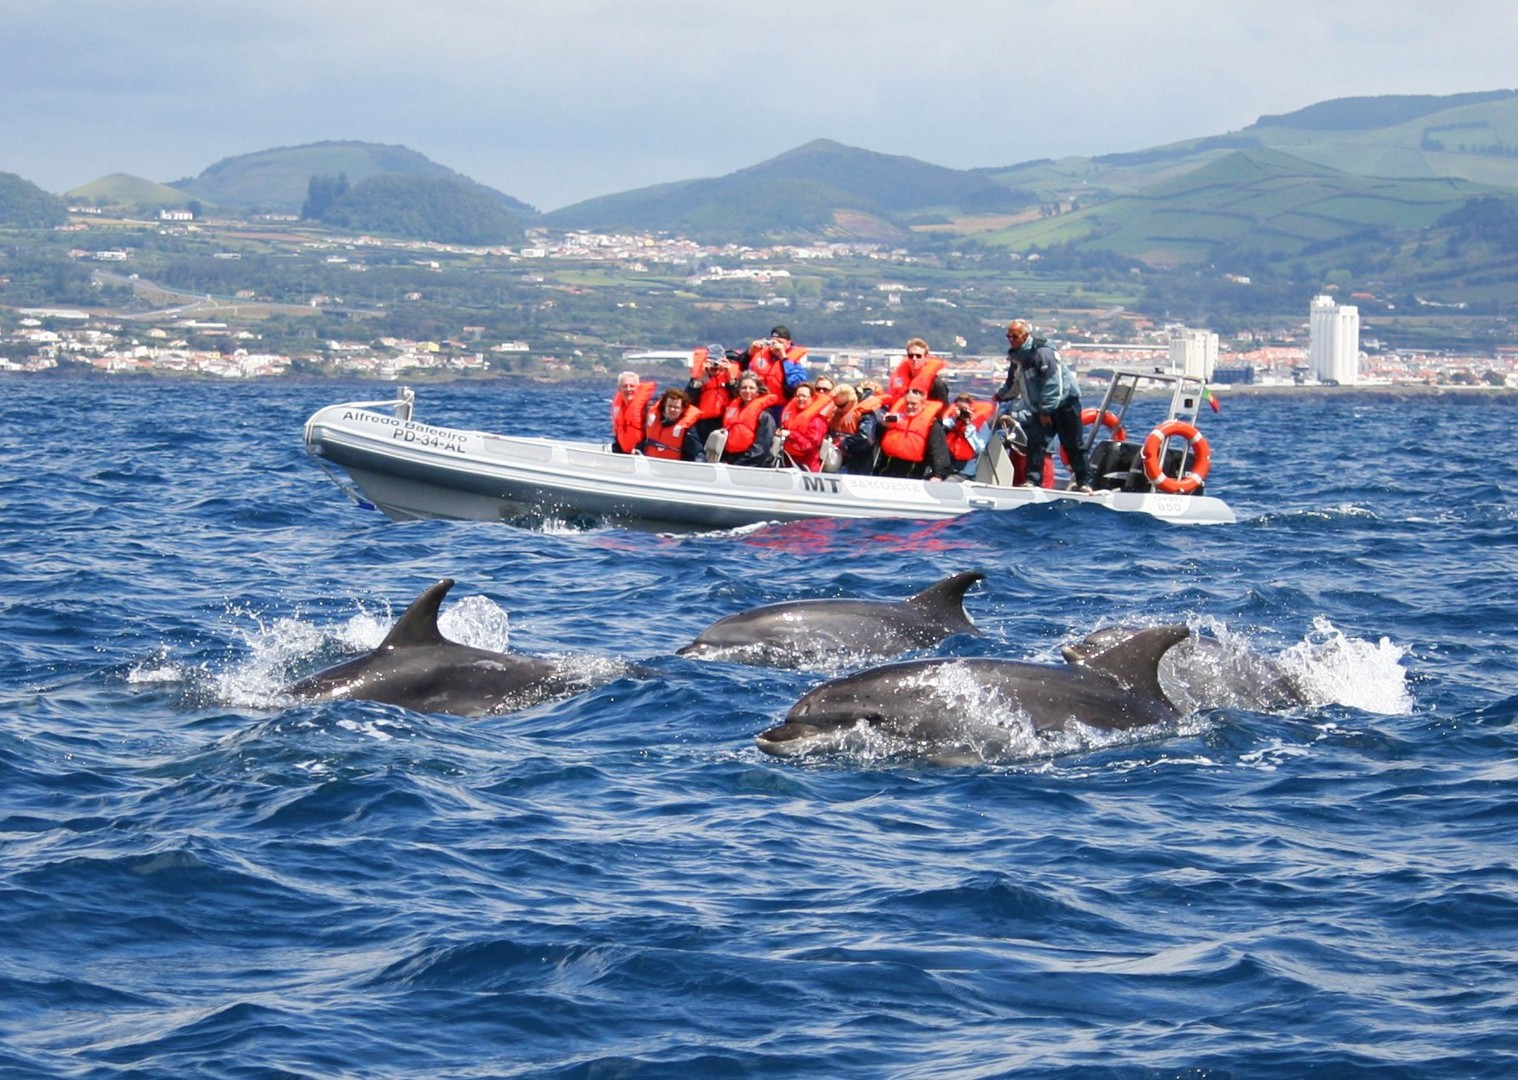 faial-de-terra-whale-watching-azores-adventures-family-cycling-trip.jpg - The Azores - Island Discoverer - Family Cycling